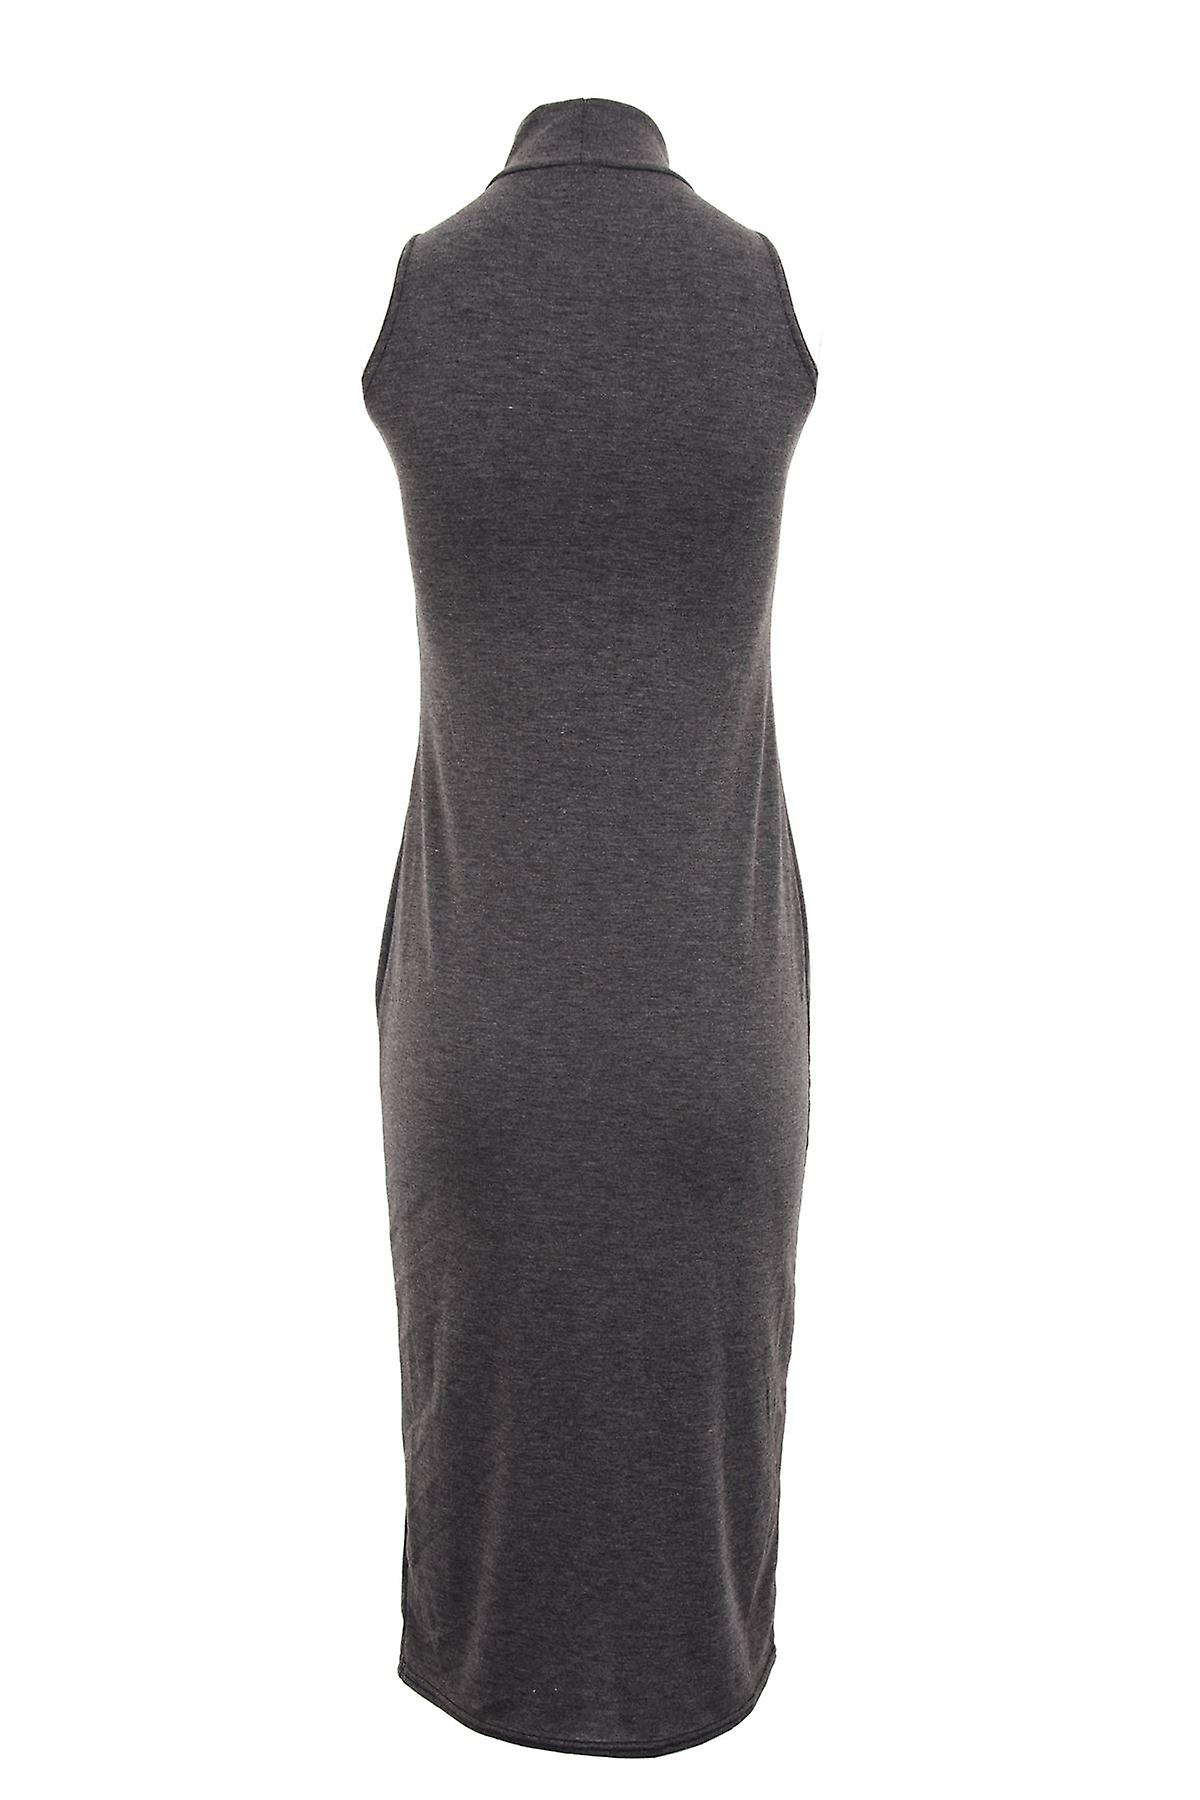 Ladies Sleeveless Plain Maxi Full Length Turtle Neck Womens Dress